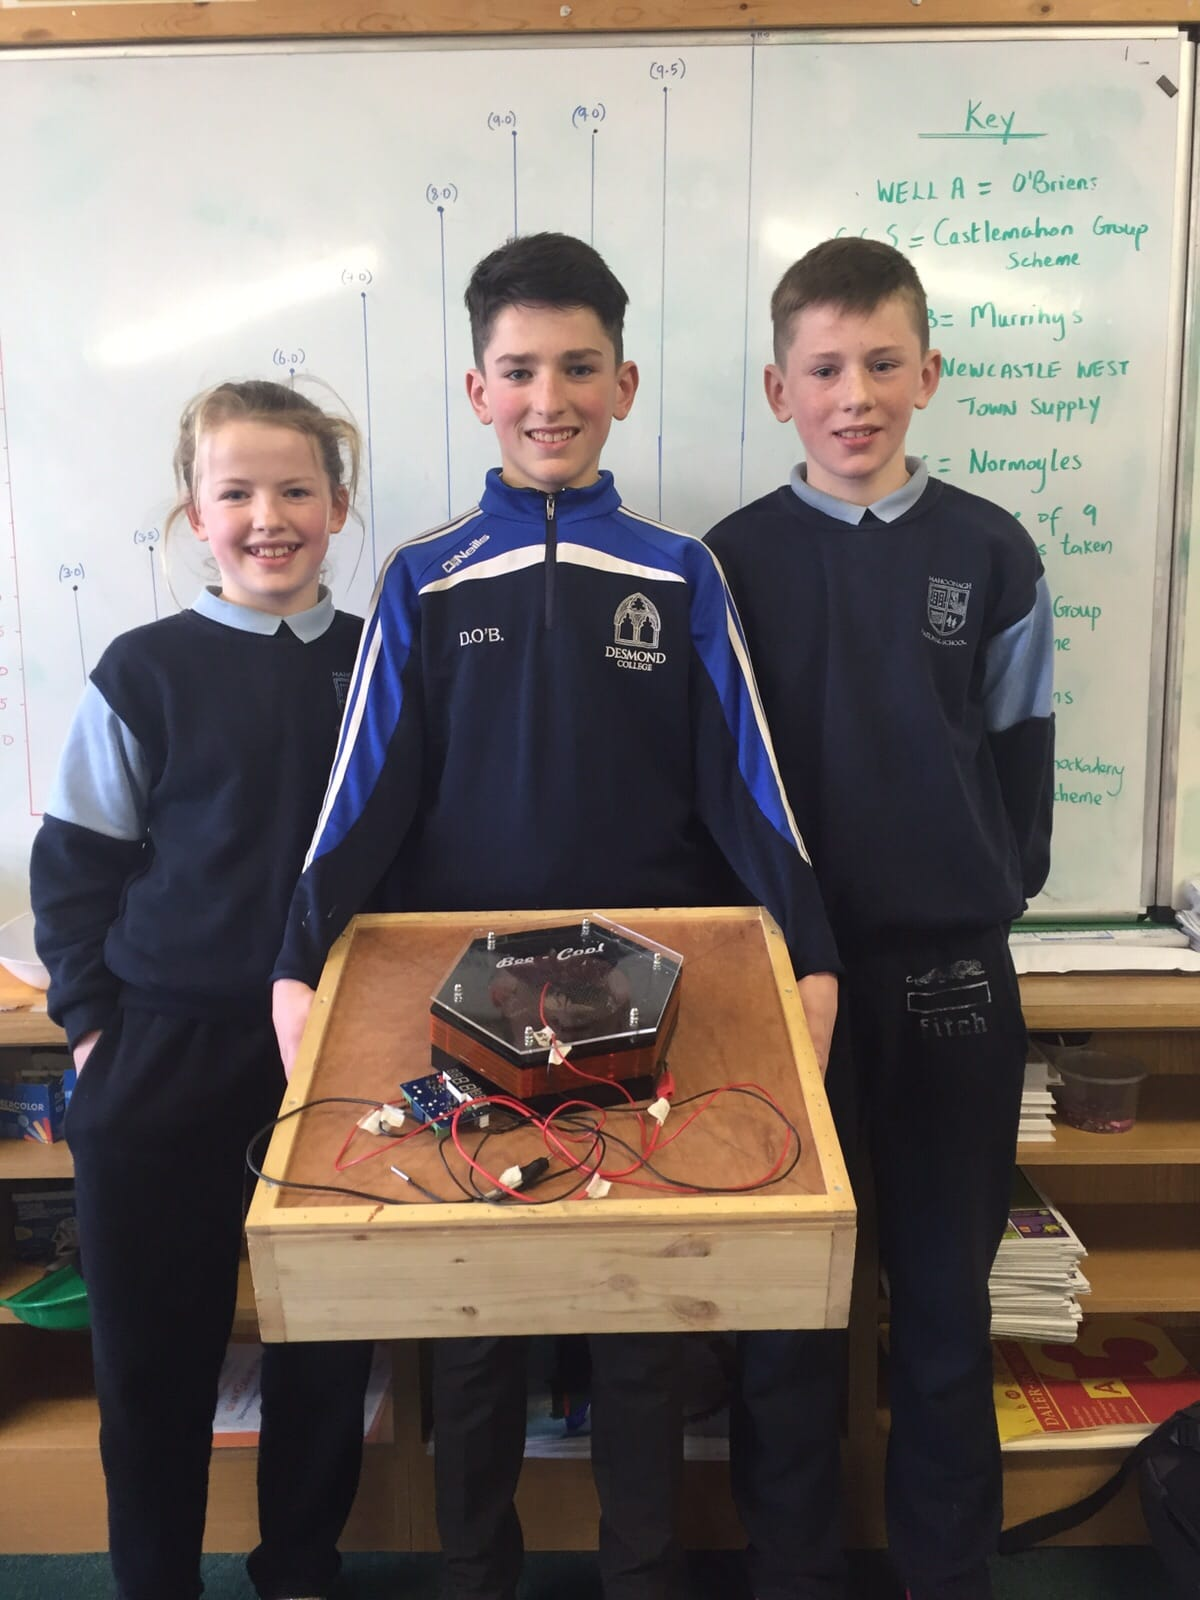 Jan 2016: David O'Brien Desmond College proudly showing off his young scientist project to his brother and sister on his recent visit to Mahoonagh National School